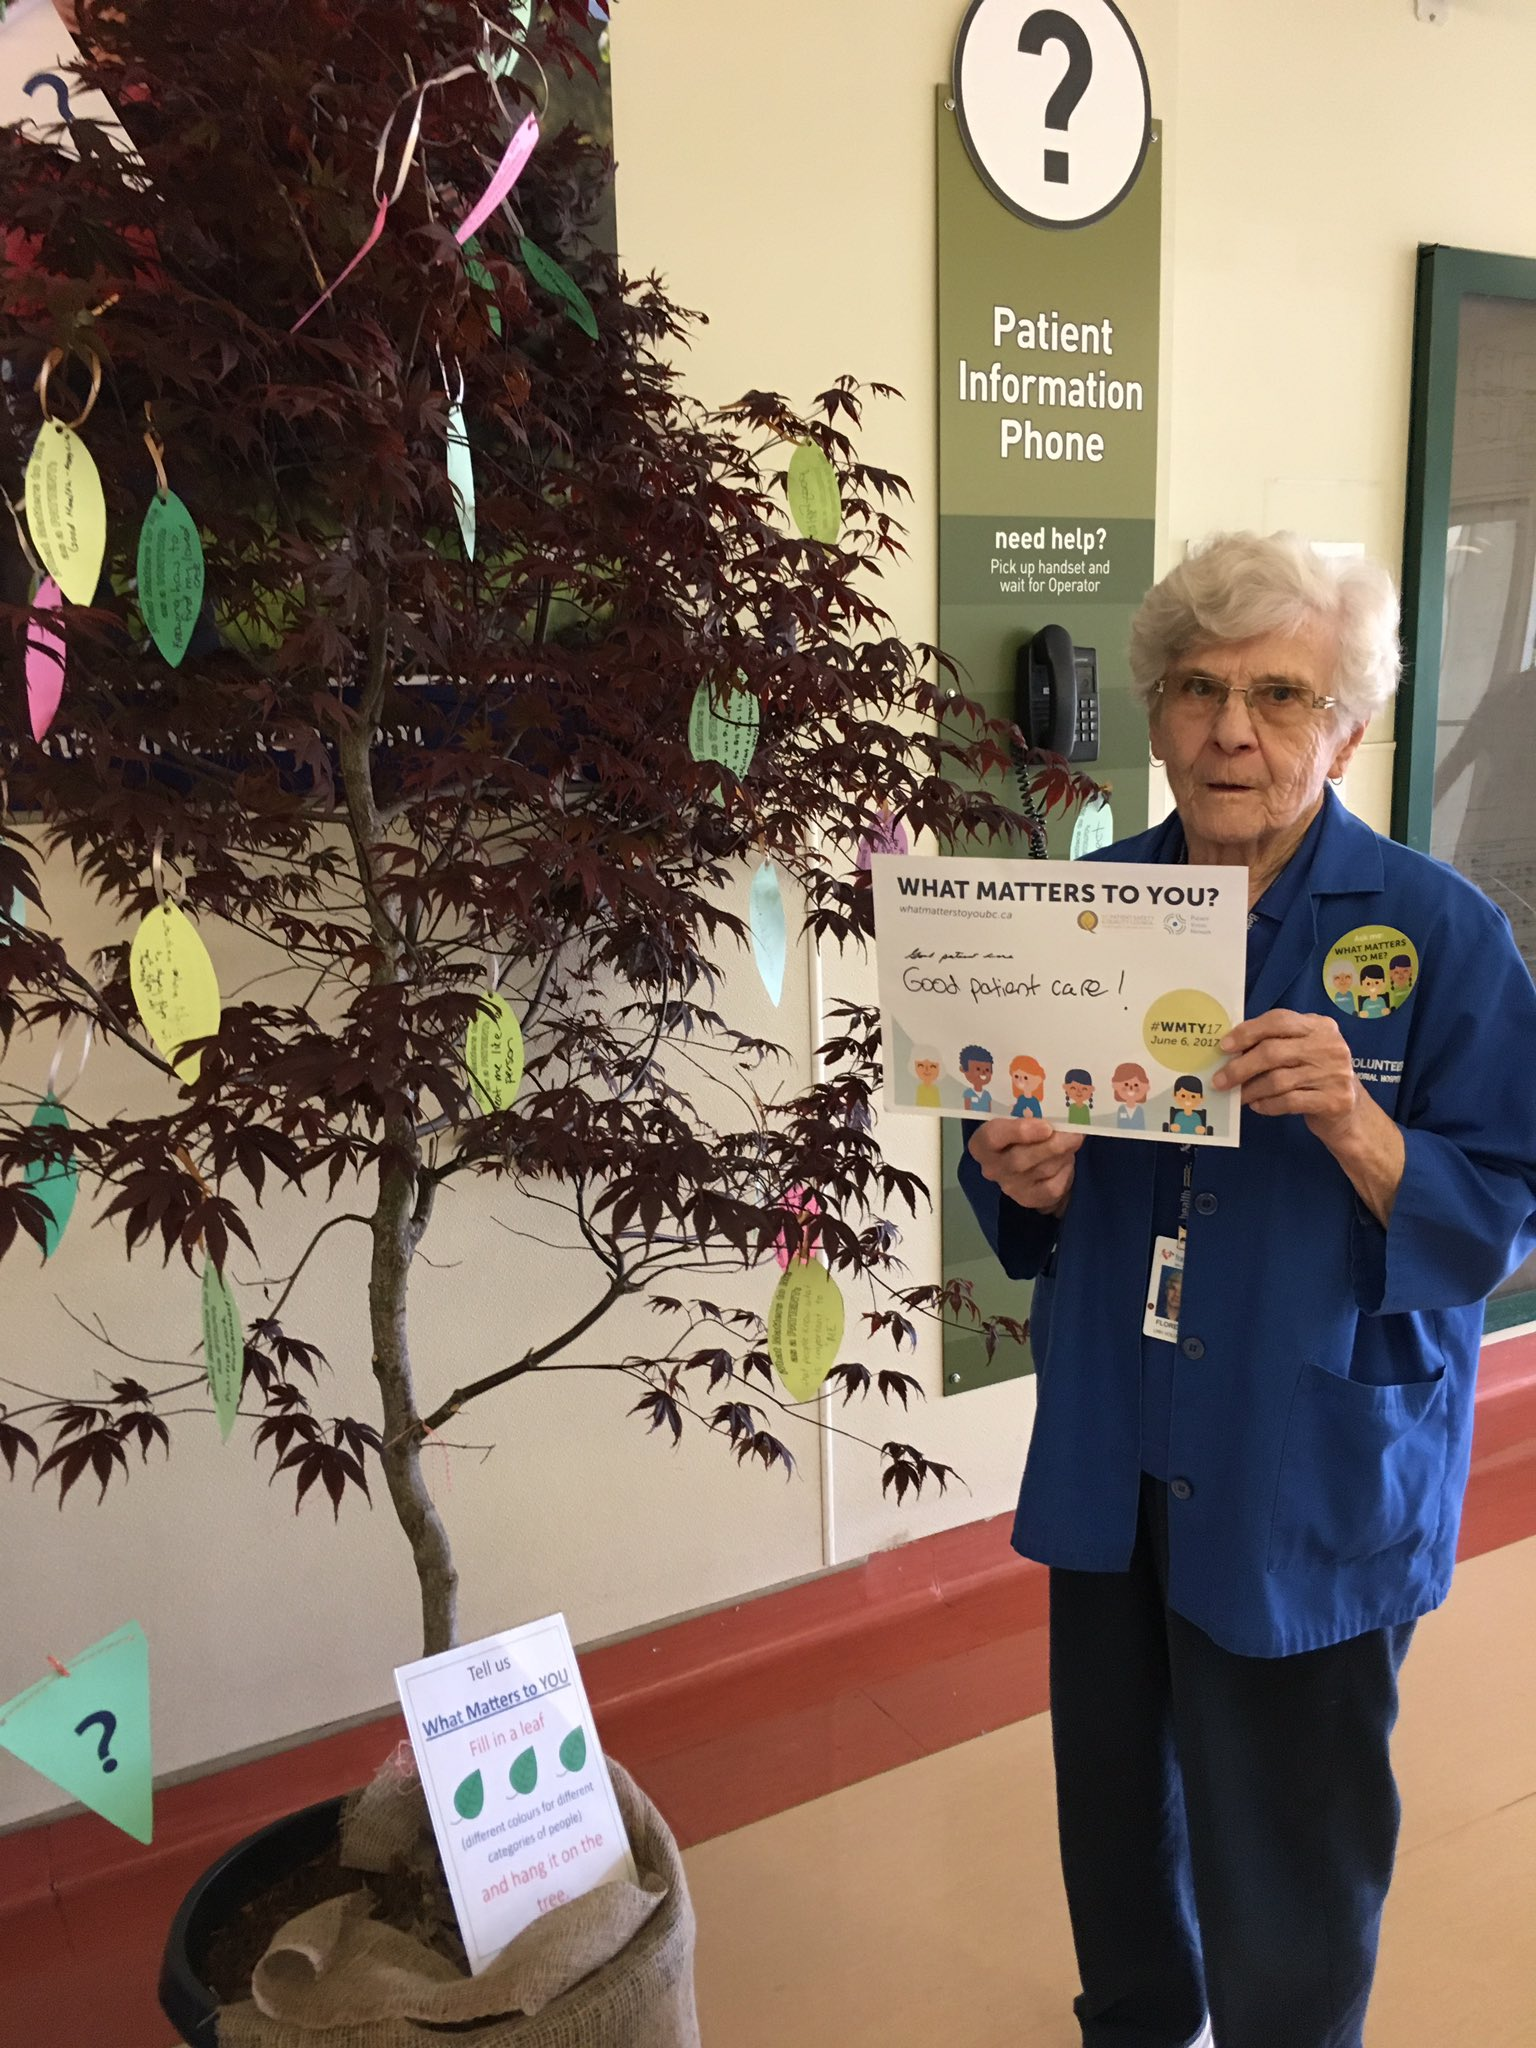 "#langleymemorialhospital volunteer Flo  ""good patient care"" matters to her. #WMTY17 @Fraserhealth @PatientVoicesBC @BCPSQC https://t.co/wUKyTqpJJy"